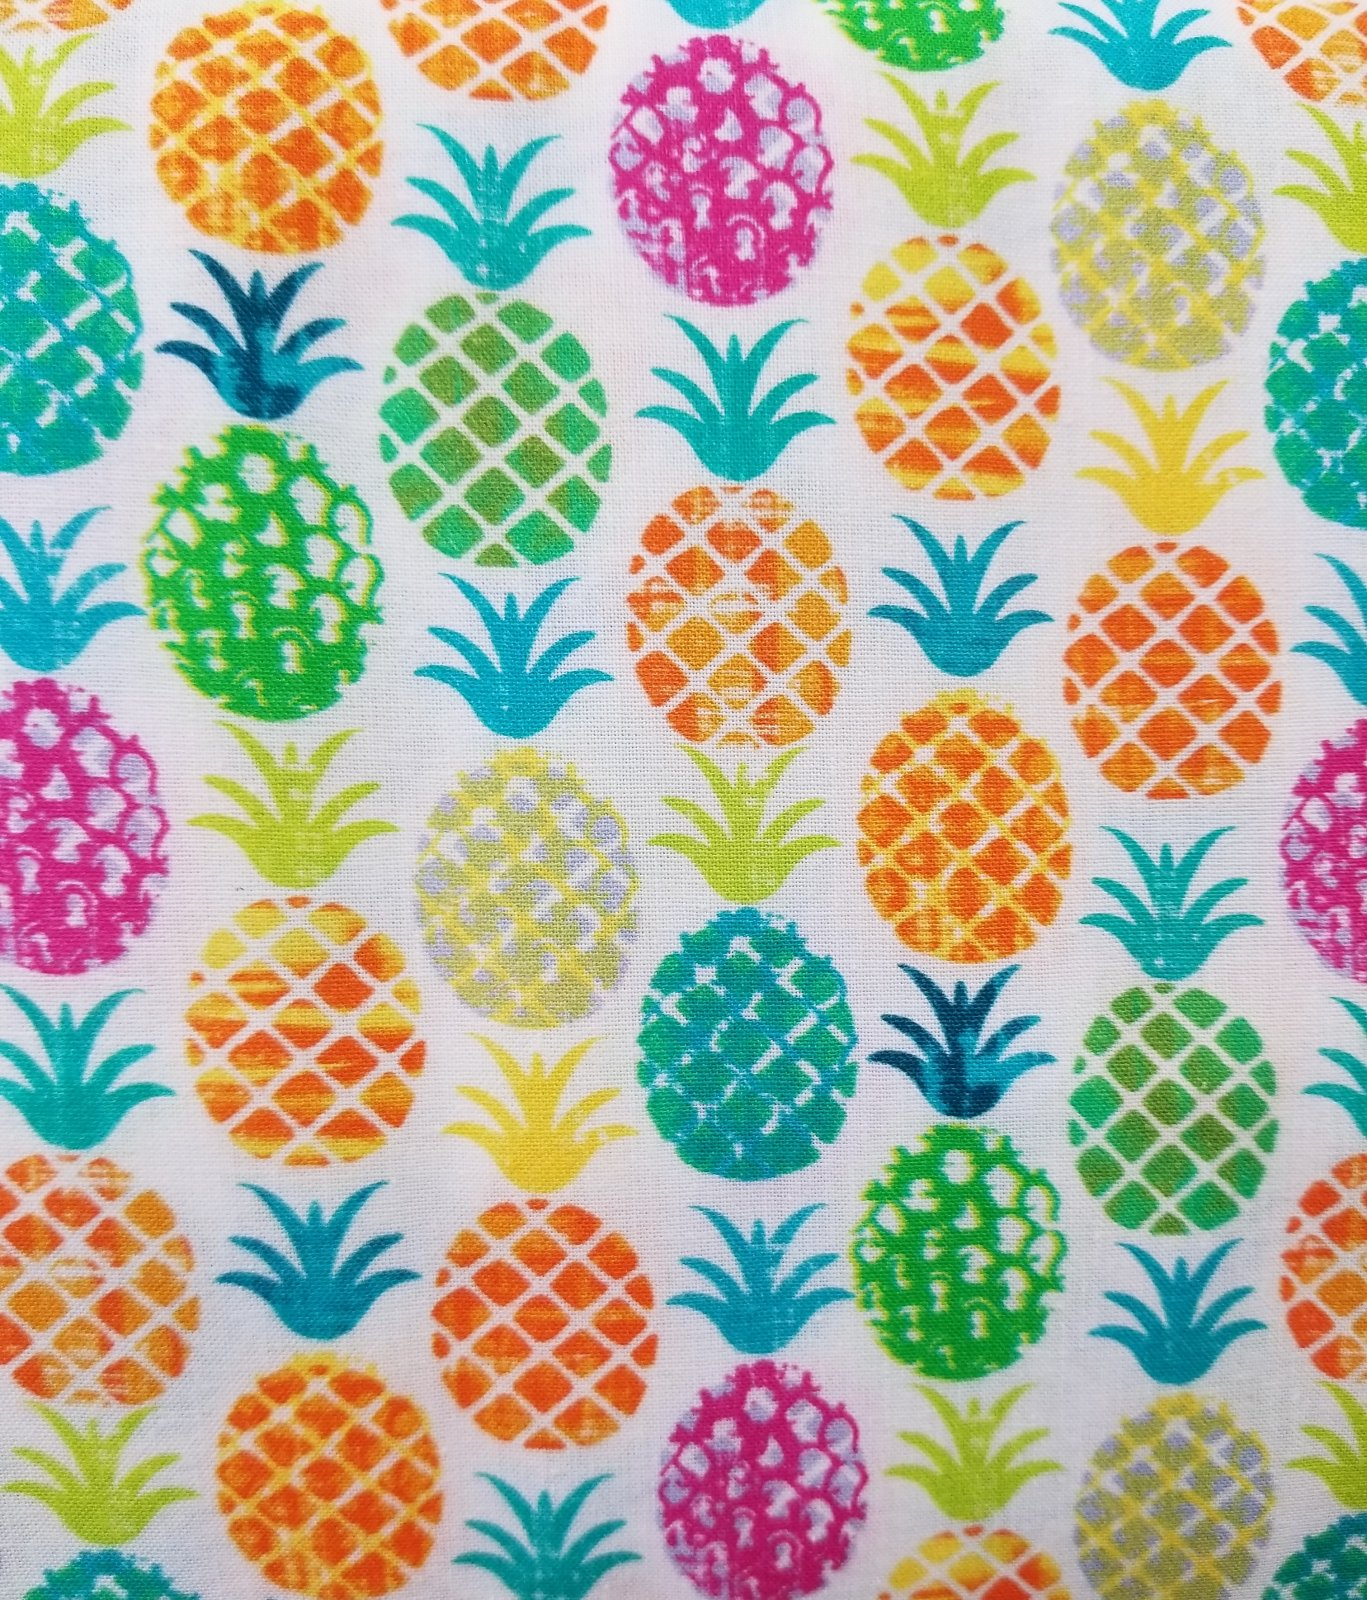 64 Pineapple Print Quilt Backing